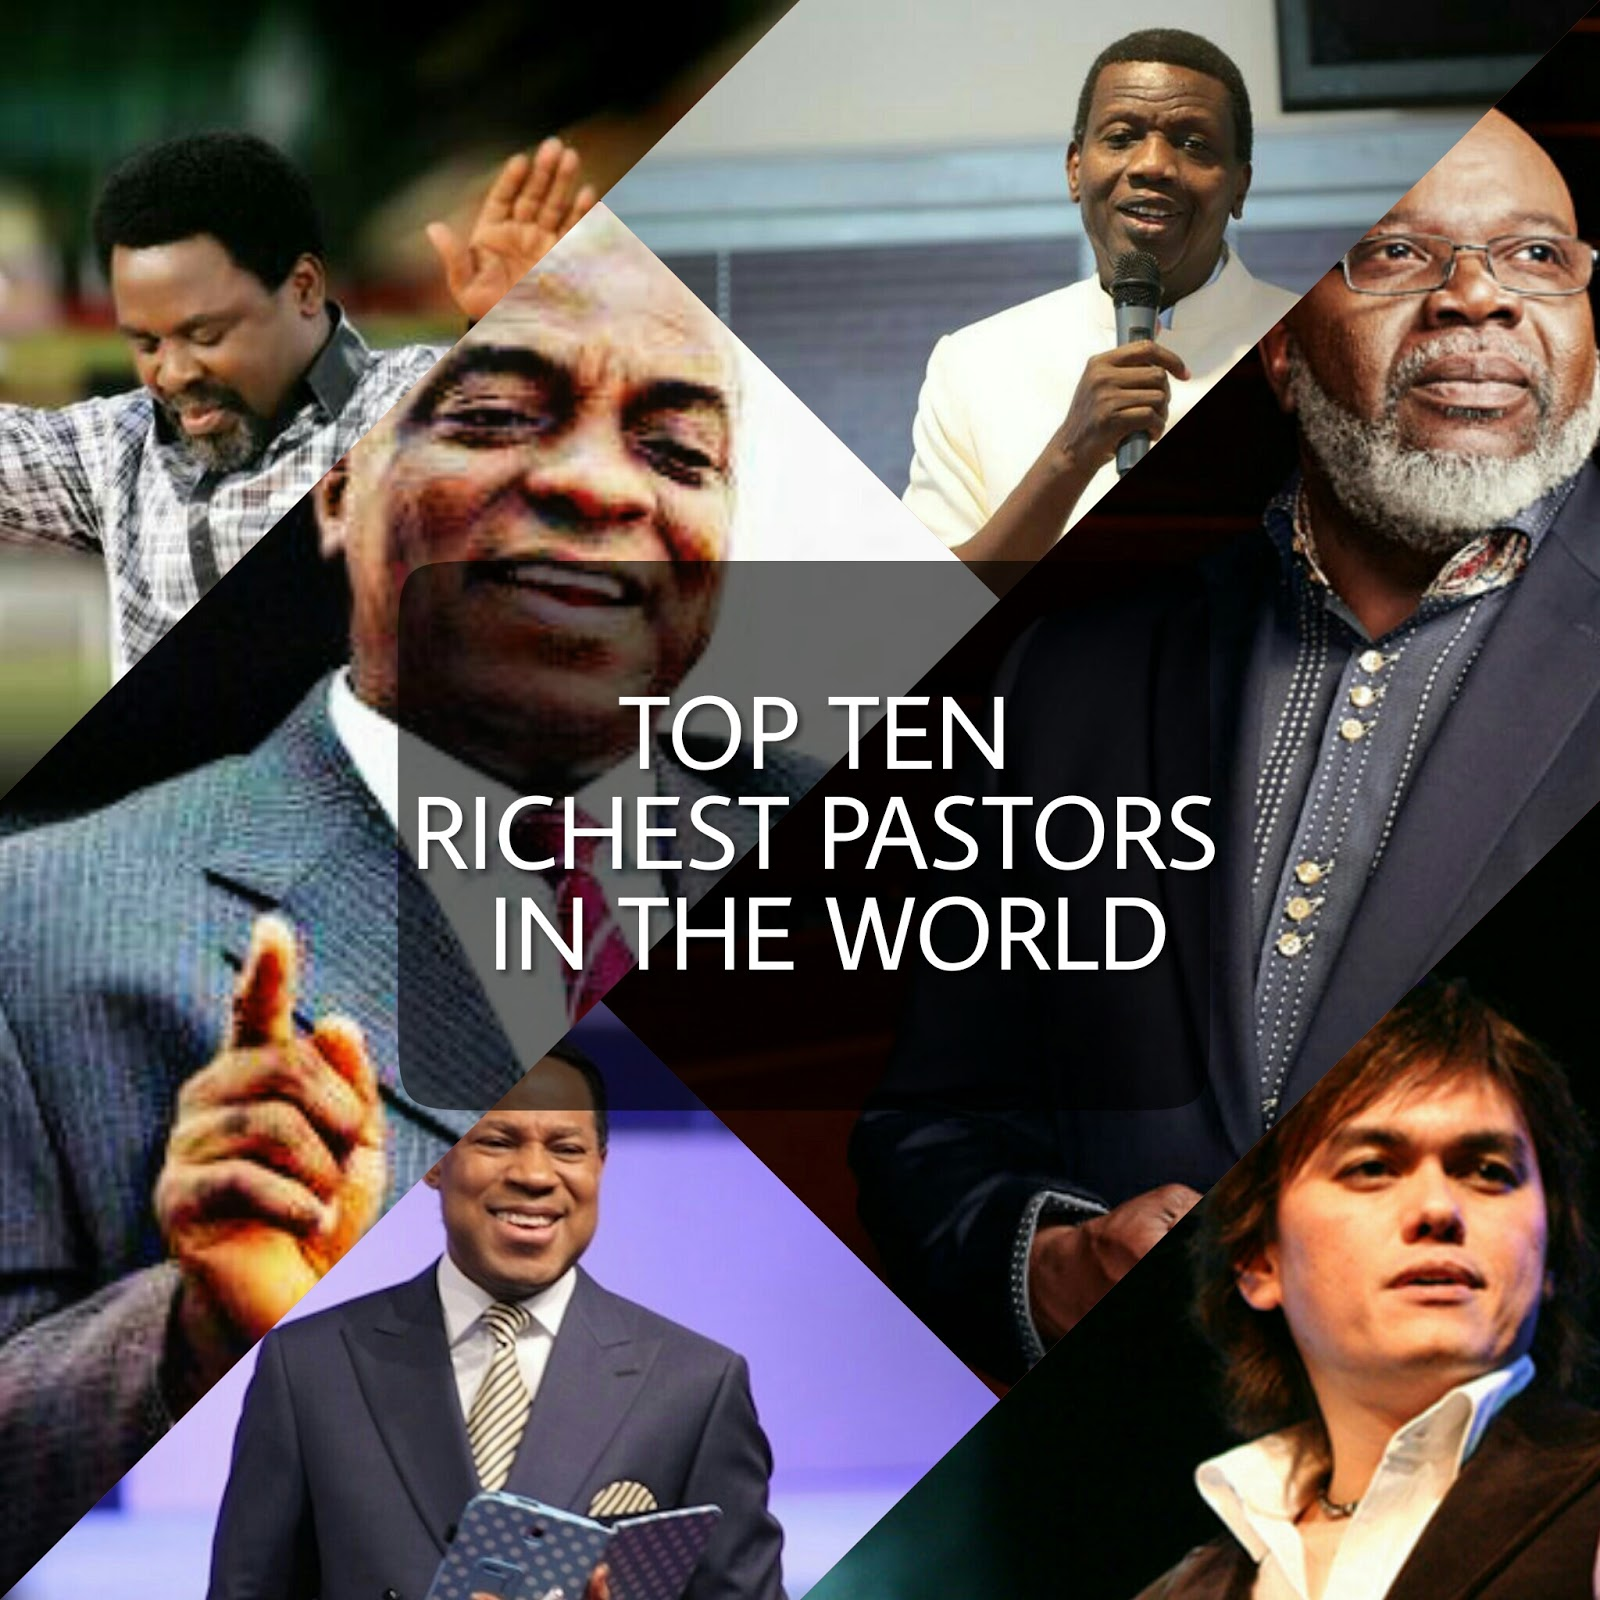 top 10 richest pastors in the world forbes official 2018 list photos forbes released top 10 world richest pastors bishop david oyedepo become no 1 187 premium9ja